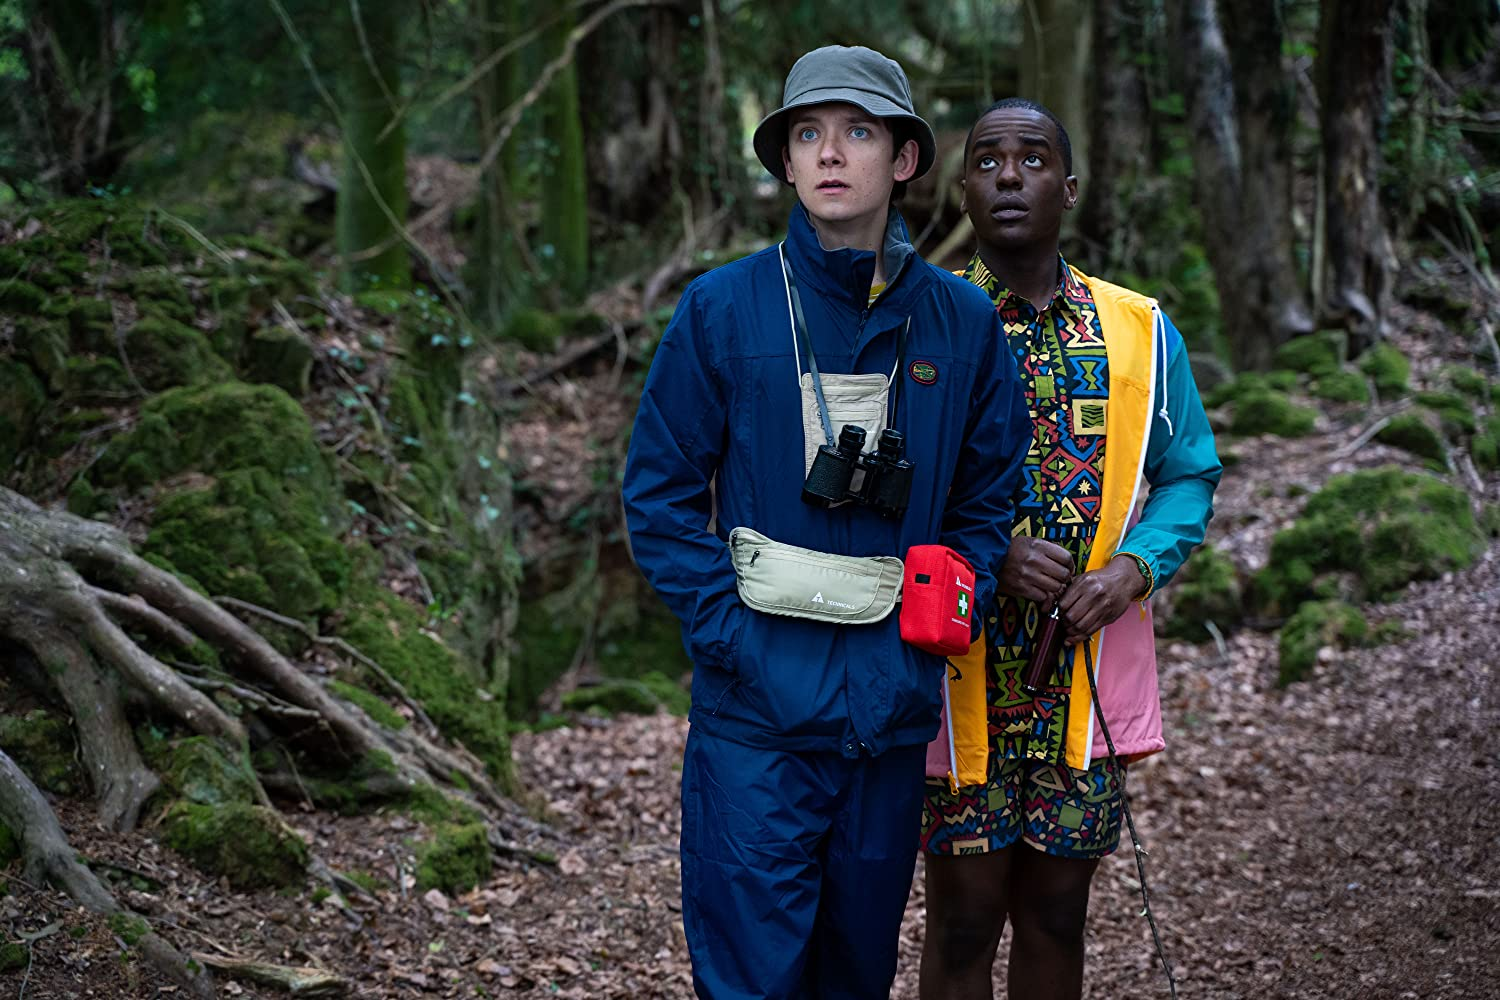 Asa Butterfield and Ncuti Gatwa in Sex Education (2019)